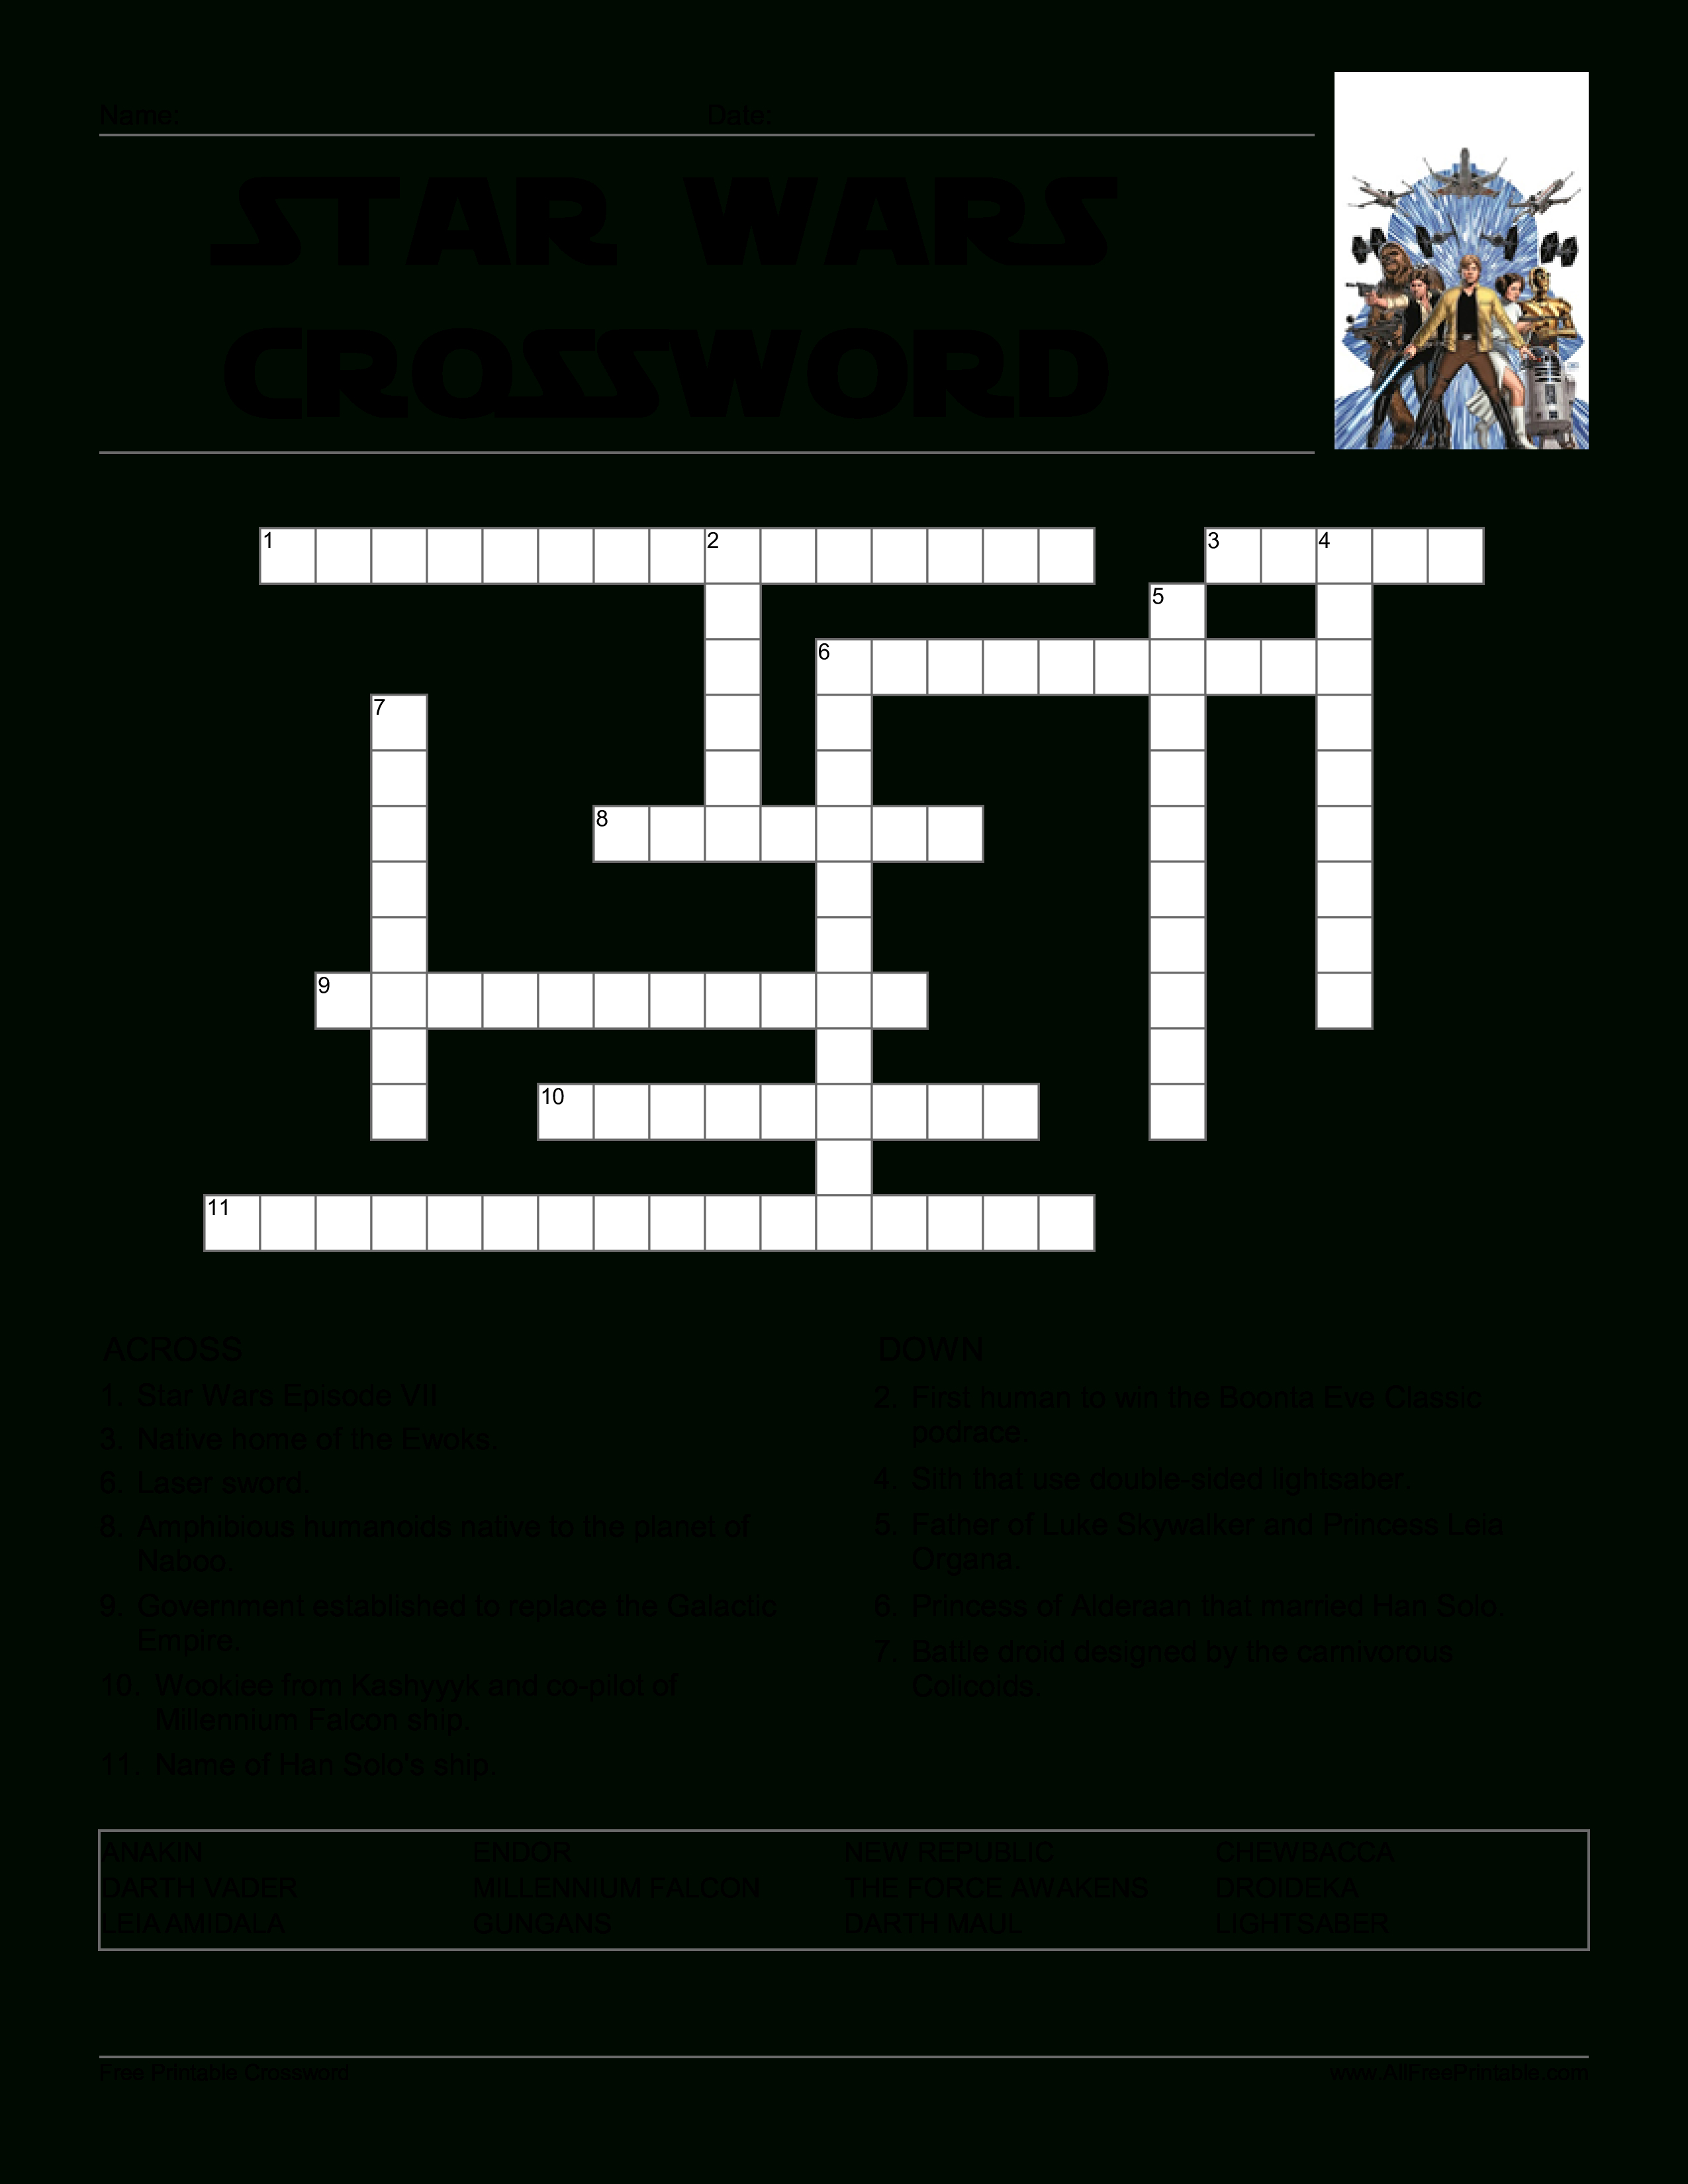 Star Wars Crossword Game | Templates At Allbusinesstemplates - Star Wars Crossword Puzzle Printable